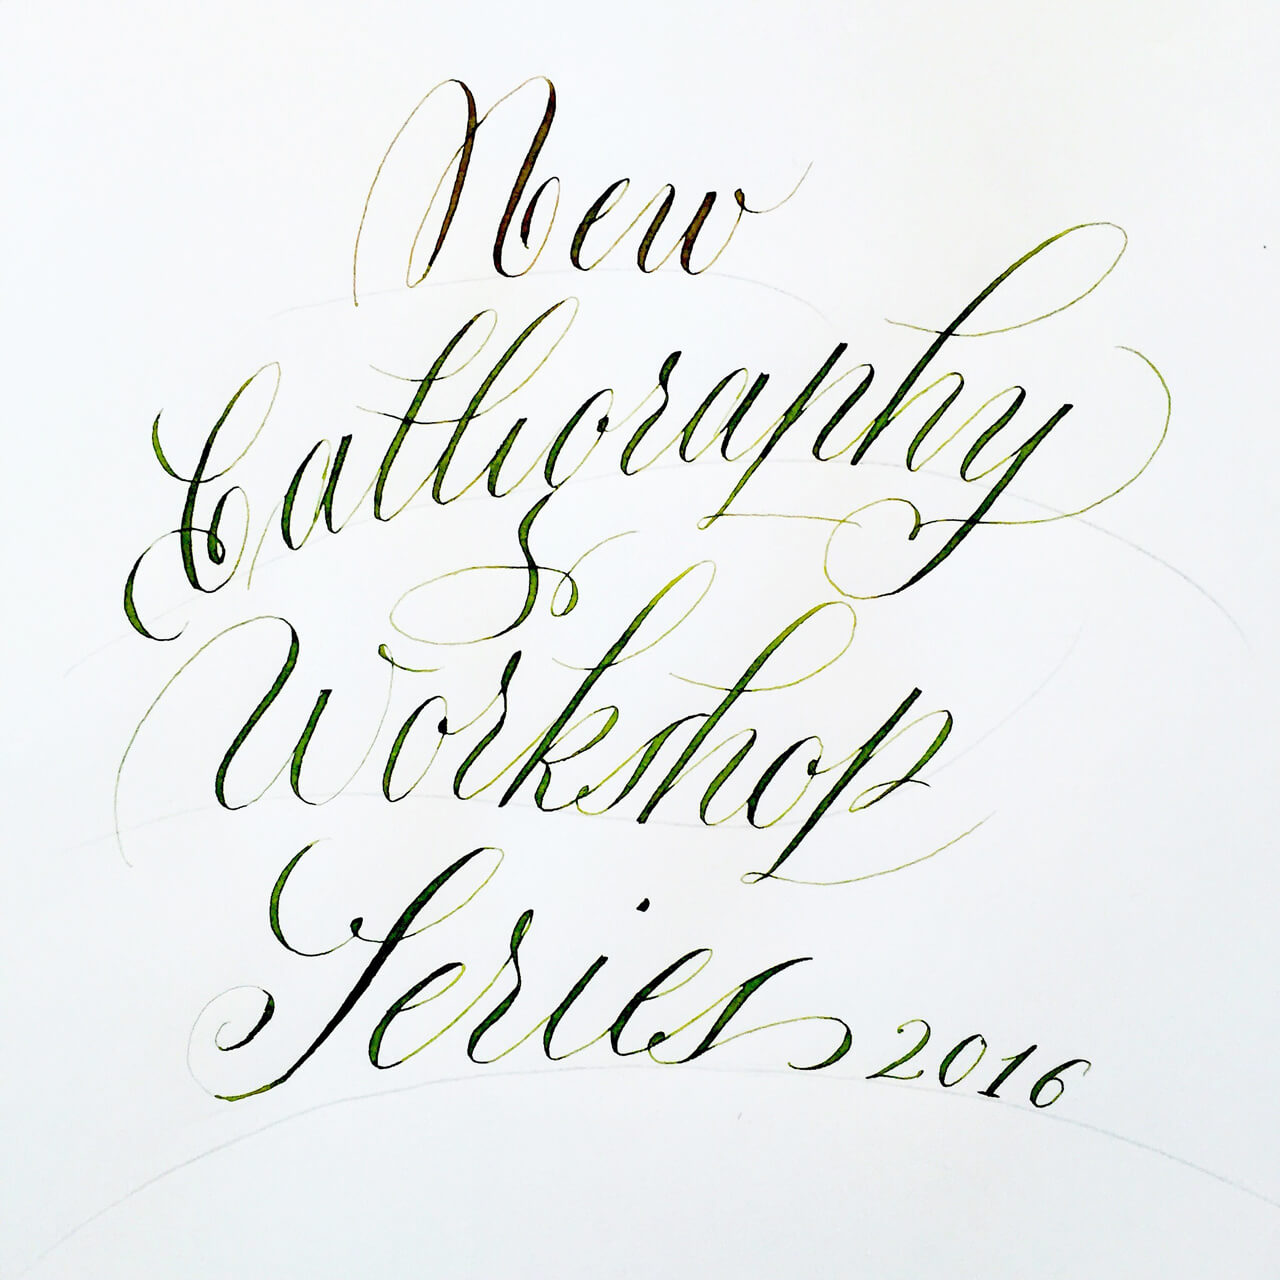 Copperplate Calligraphy 2016 Maria Montes Maria Montes